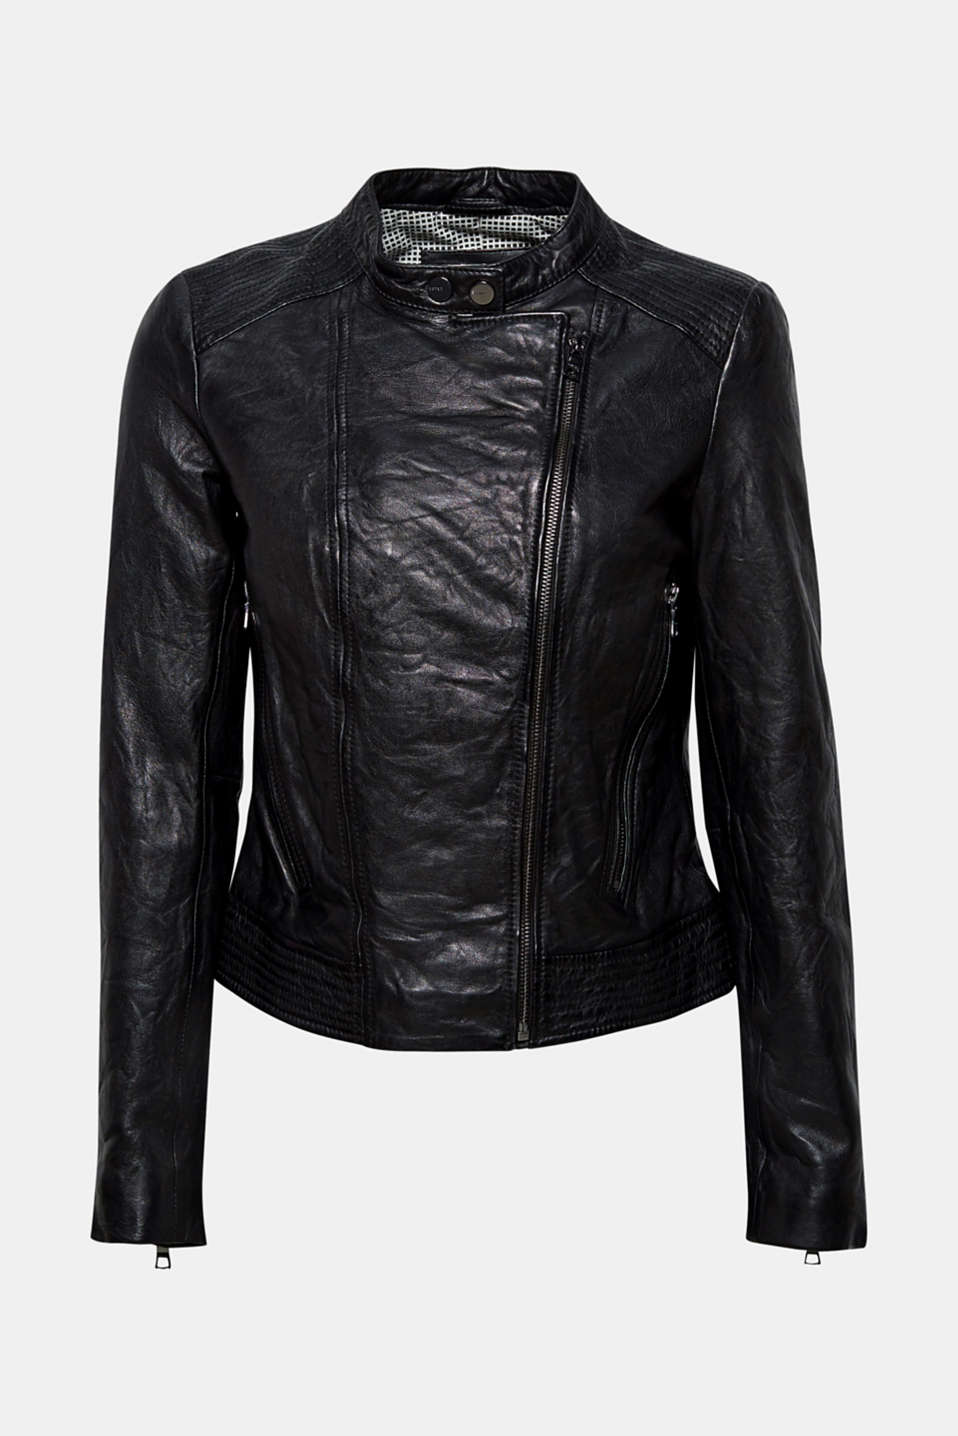 This ultra soft leather jacket features cool characteristic biker details like a stand-up collar, decorative stitching and zips!